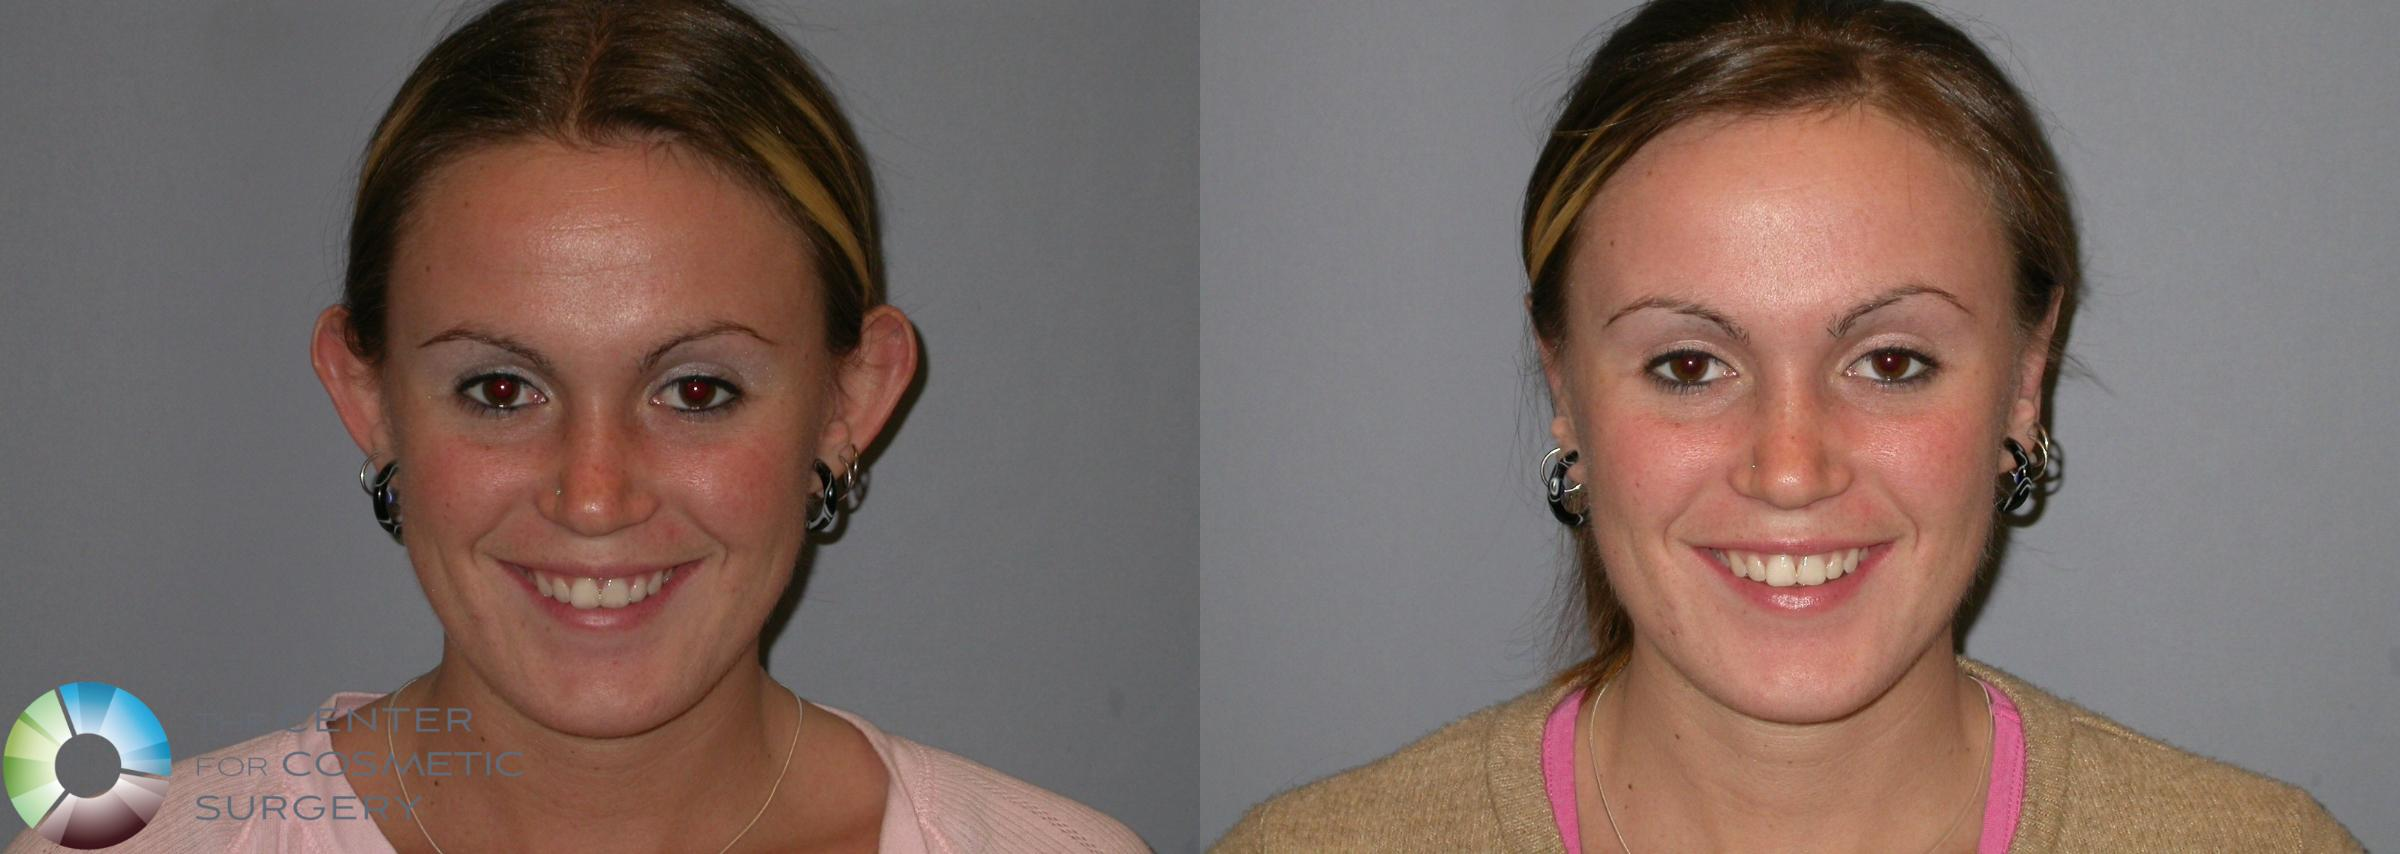 Ear Surgery Case 108 Before & After View #1 | Golden, CO | The Center for Cosmetic Surgery